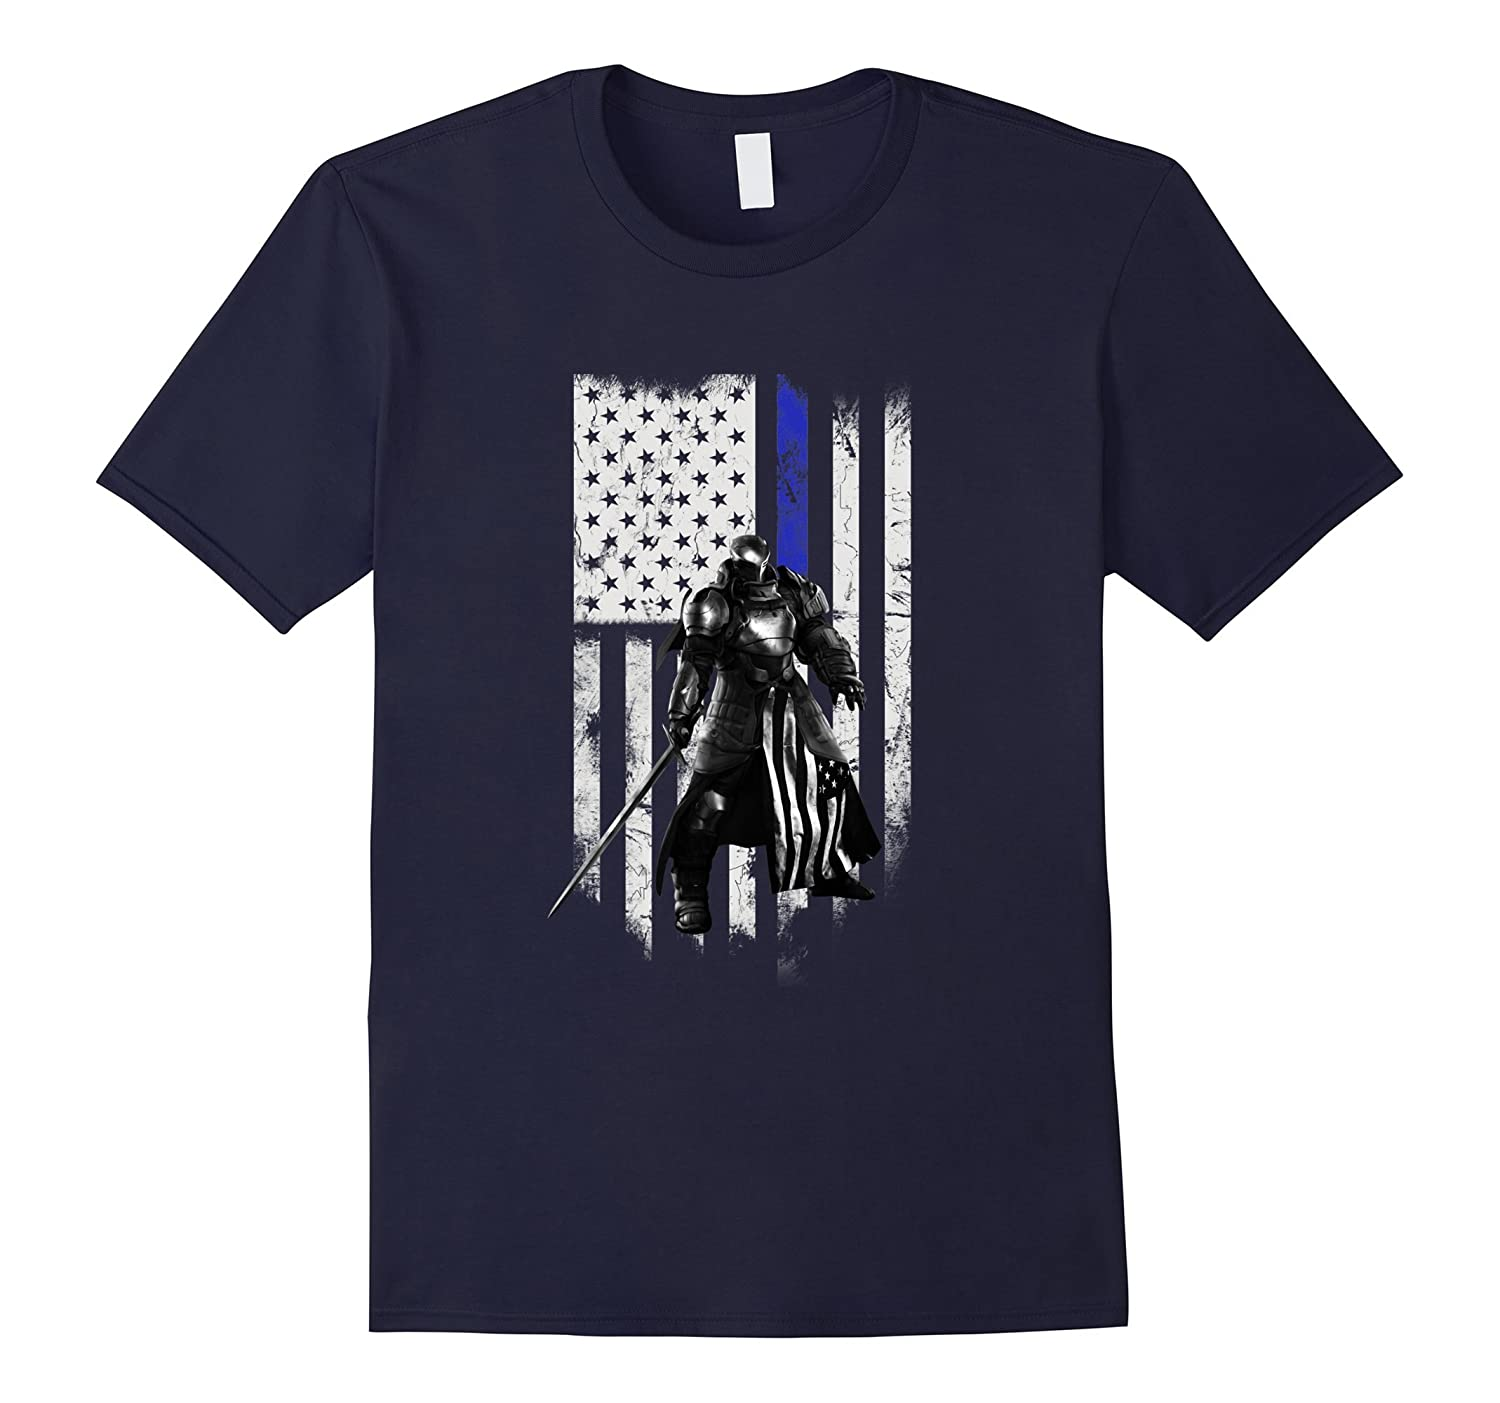 Knights Templar Shirt on Thin Blue Line American Flag-TD